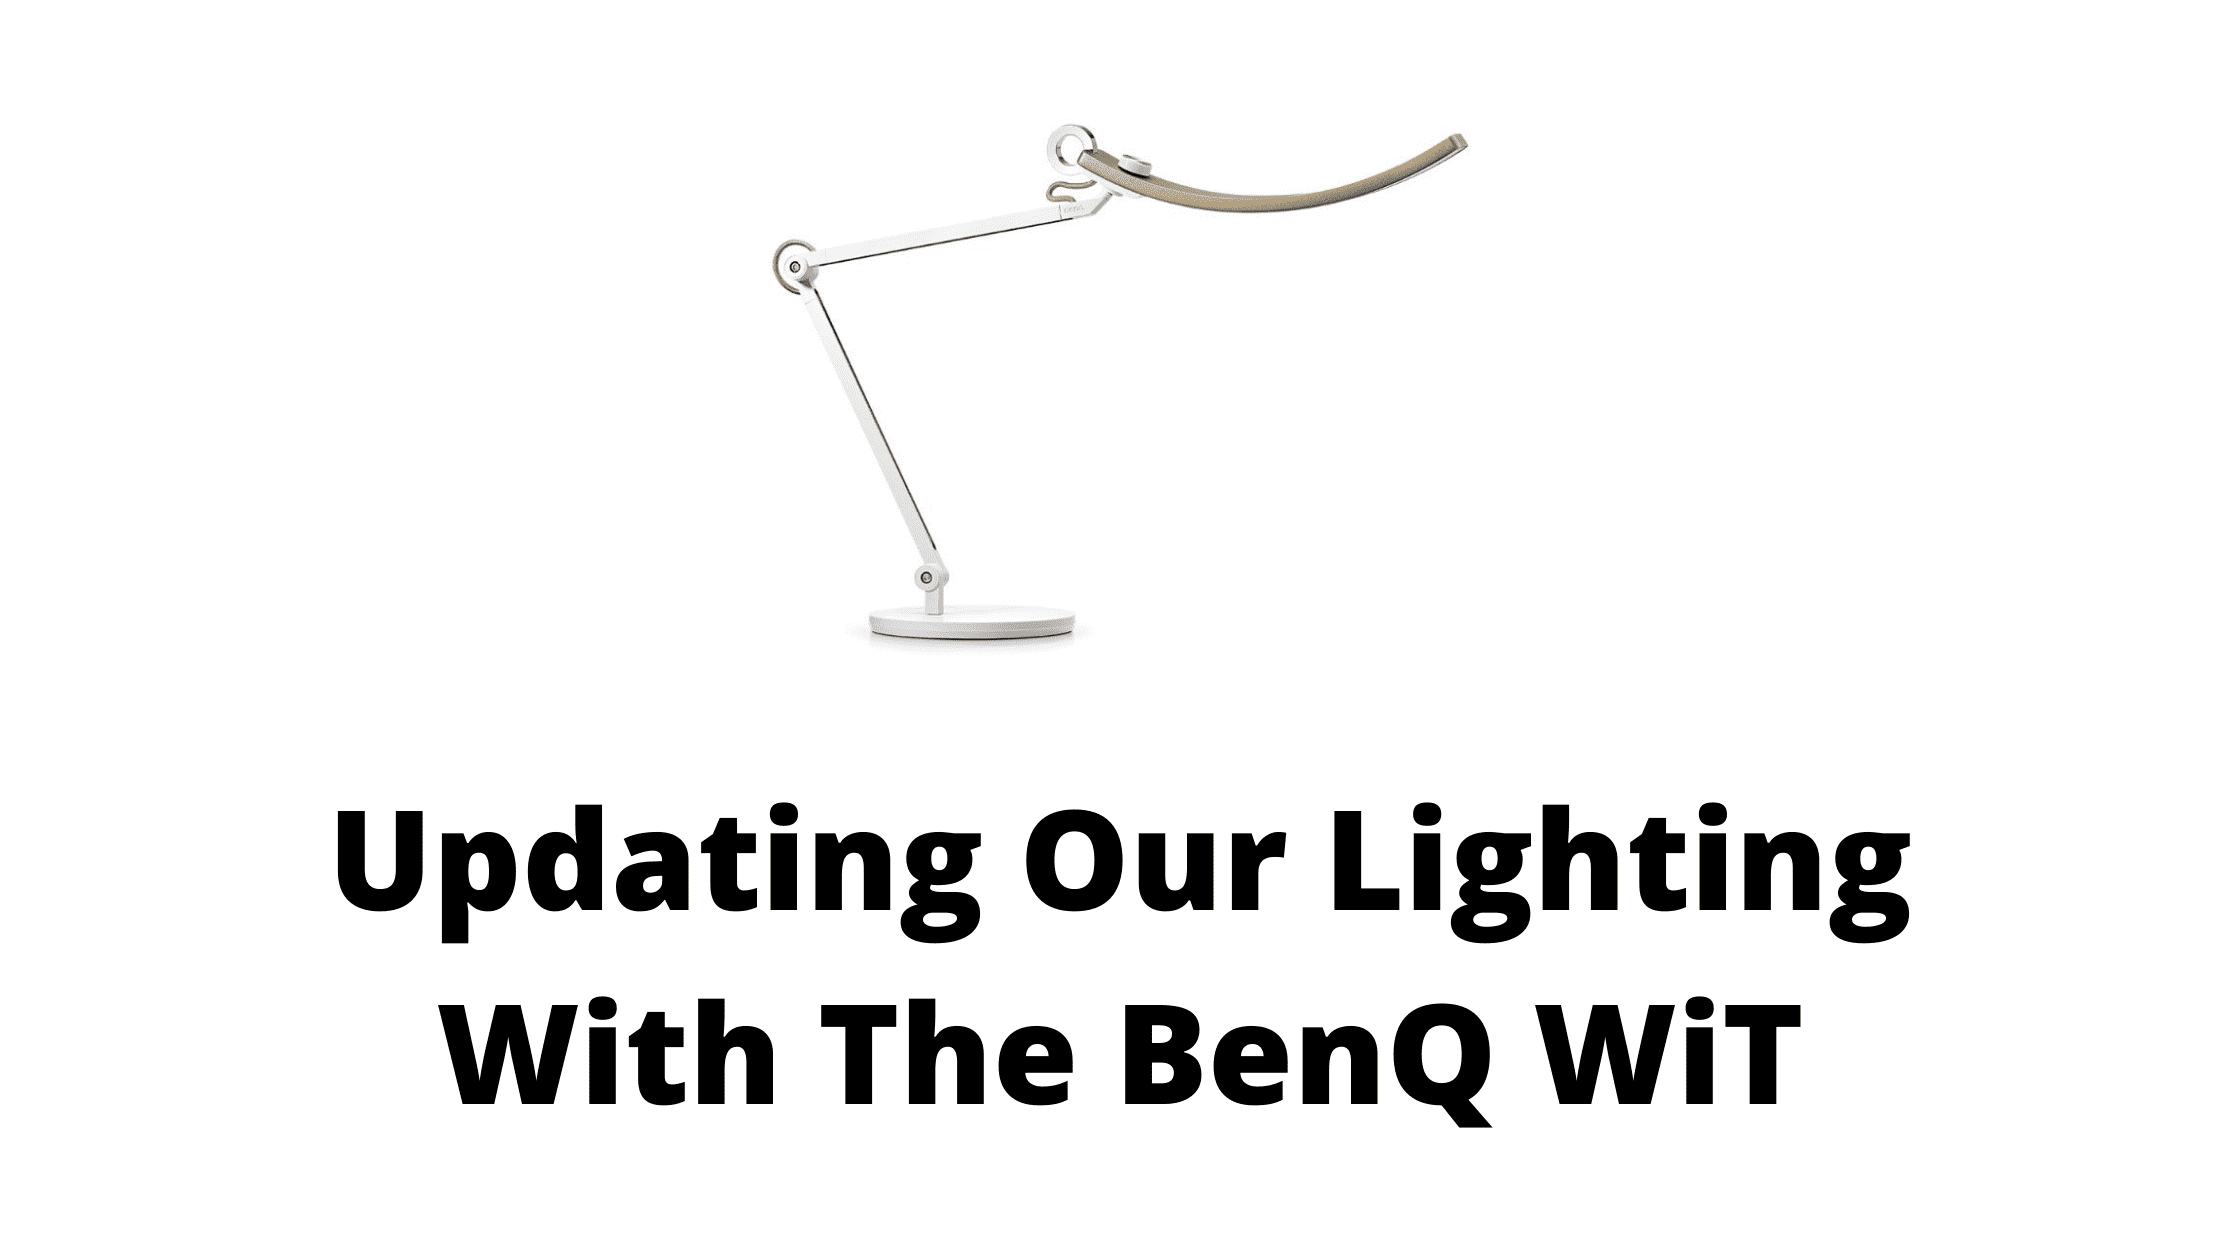 Updating Our Lighting With The BenQ WiT